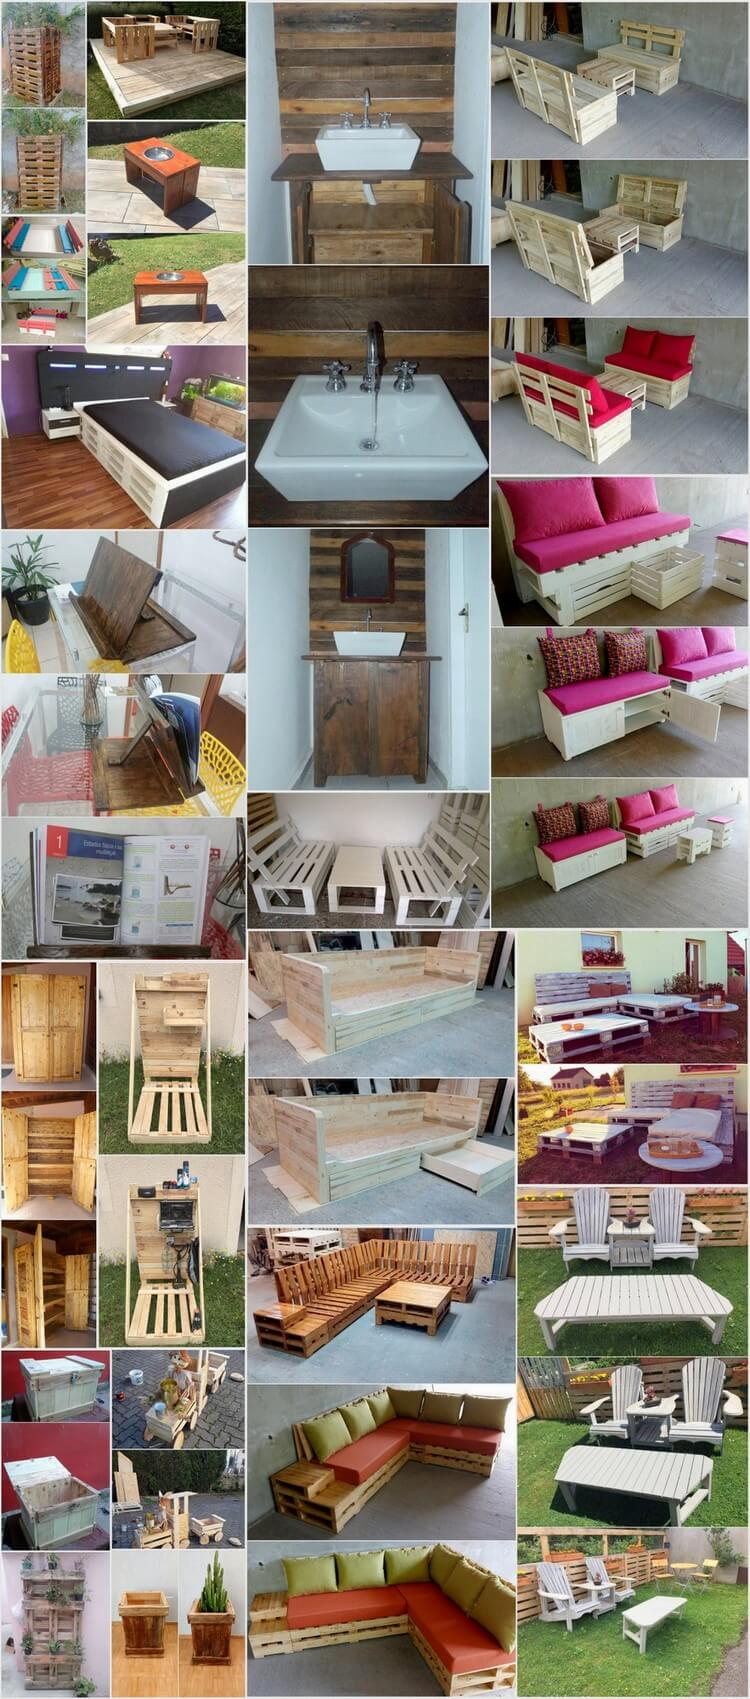 20 Plus Amazing Plans for Wooden Pallet Reusing